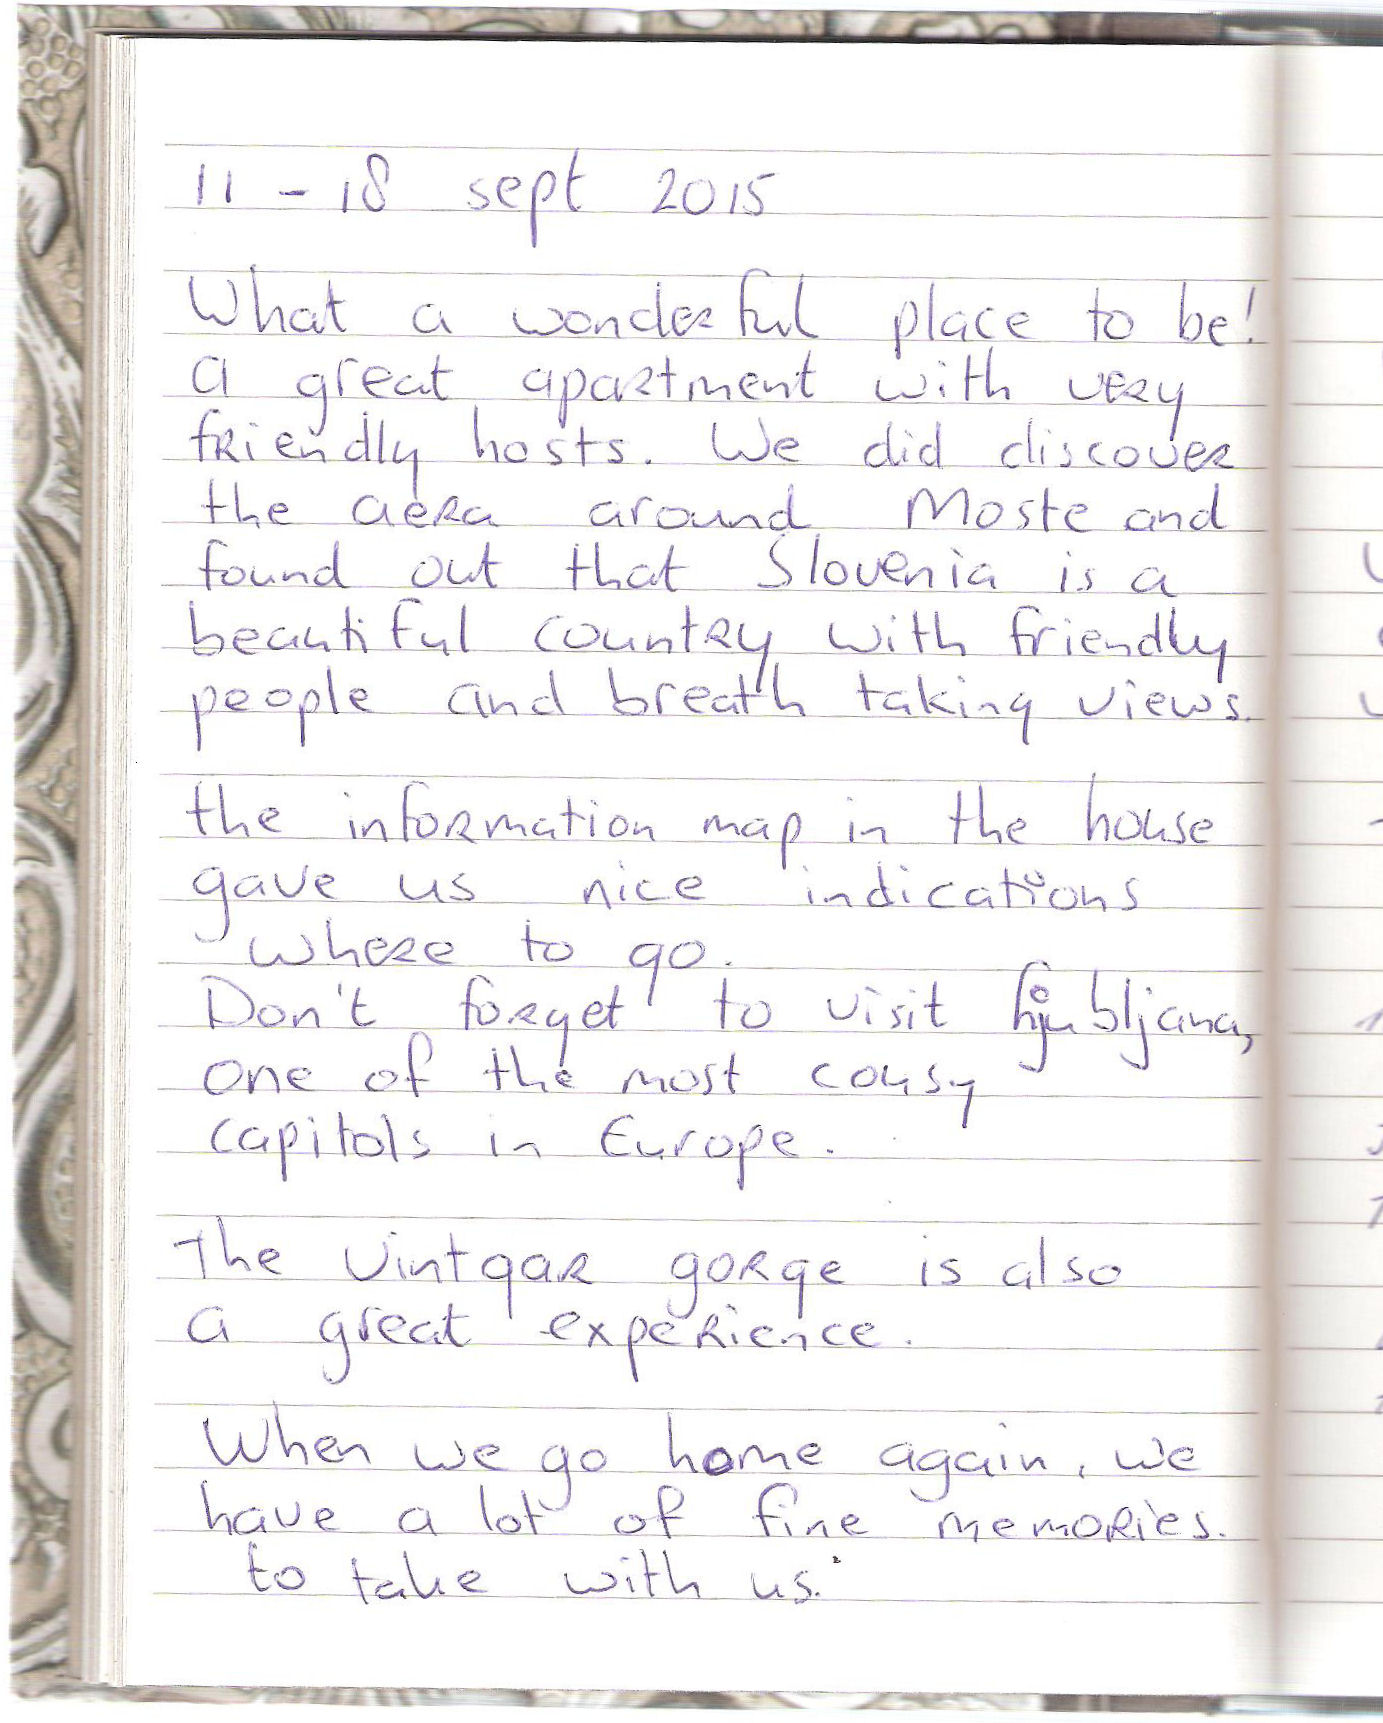 guestbook-page-028